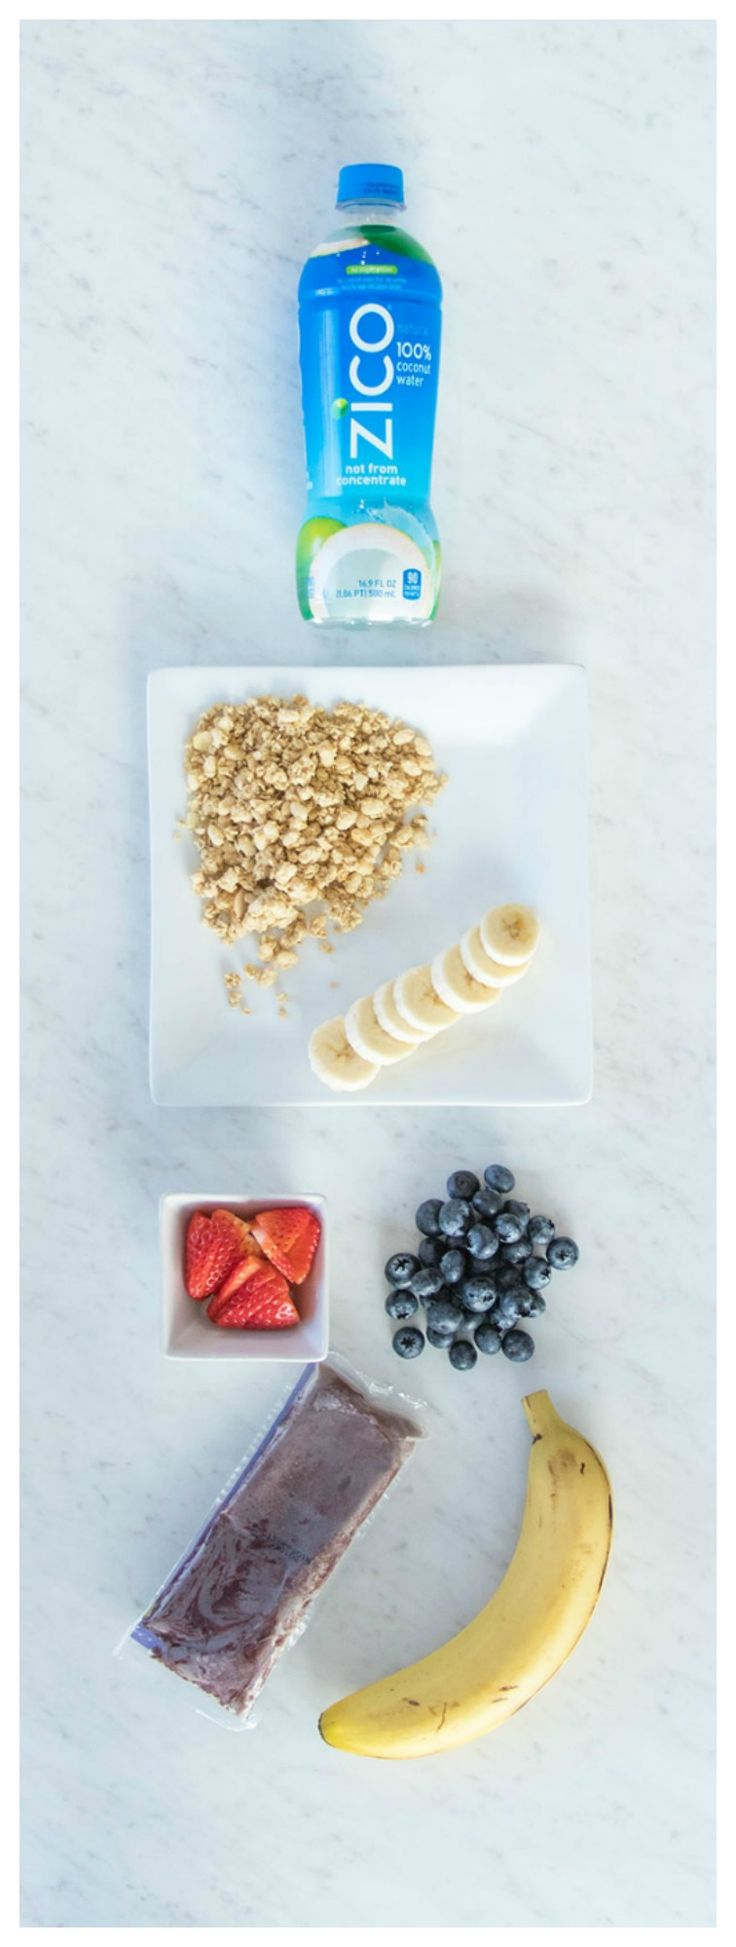 Easy recipe for an at home acai bowl with ZICO coconut water! So delicious and healthy, and your kids will love them too! http://lifebylee.com/easy-acai-bowl-with-coconut-water/